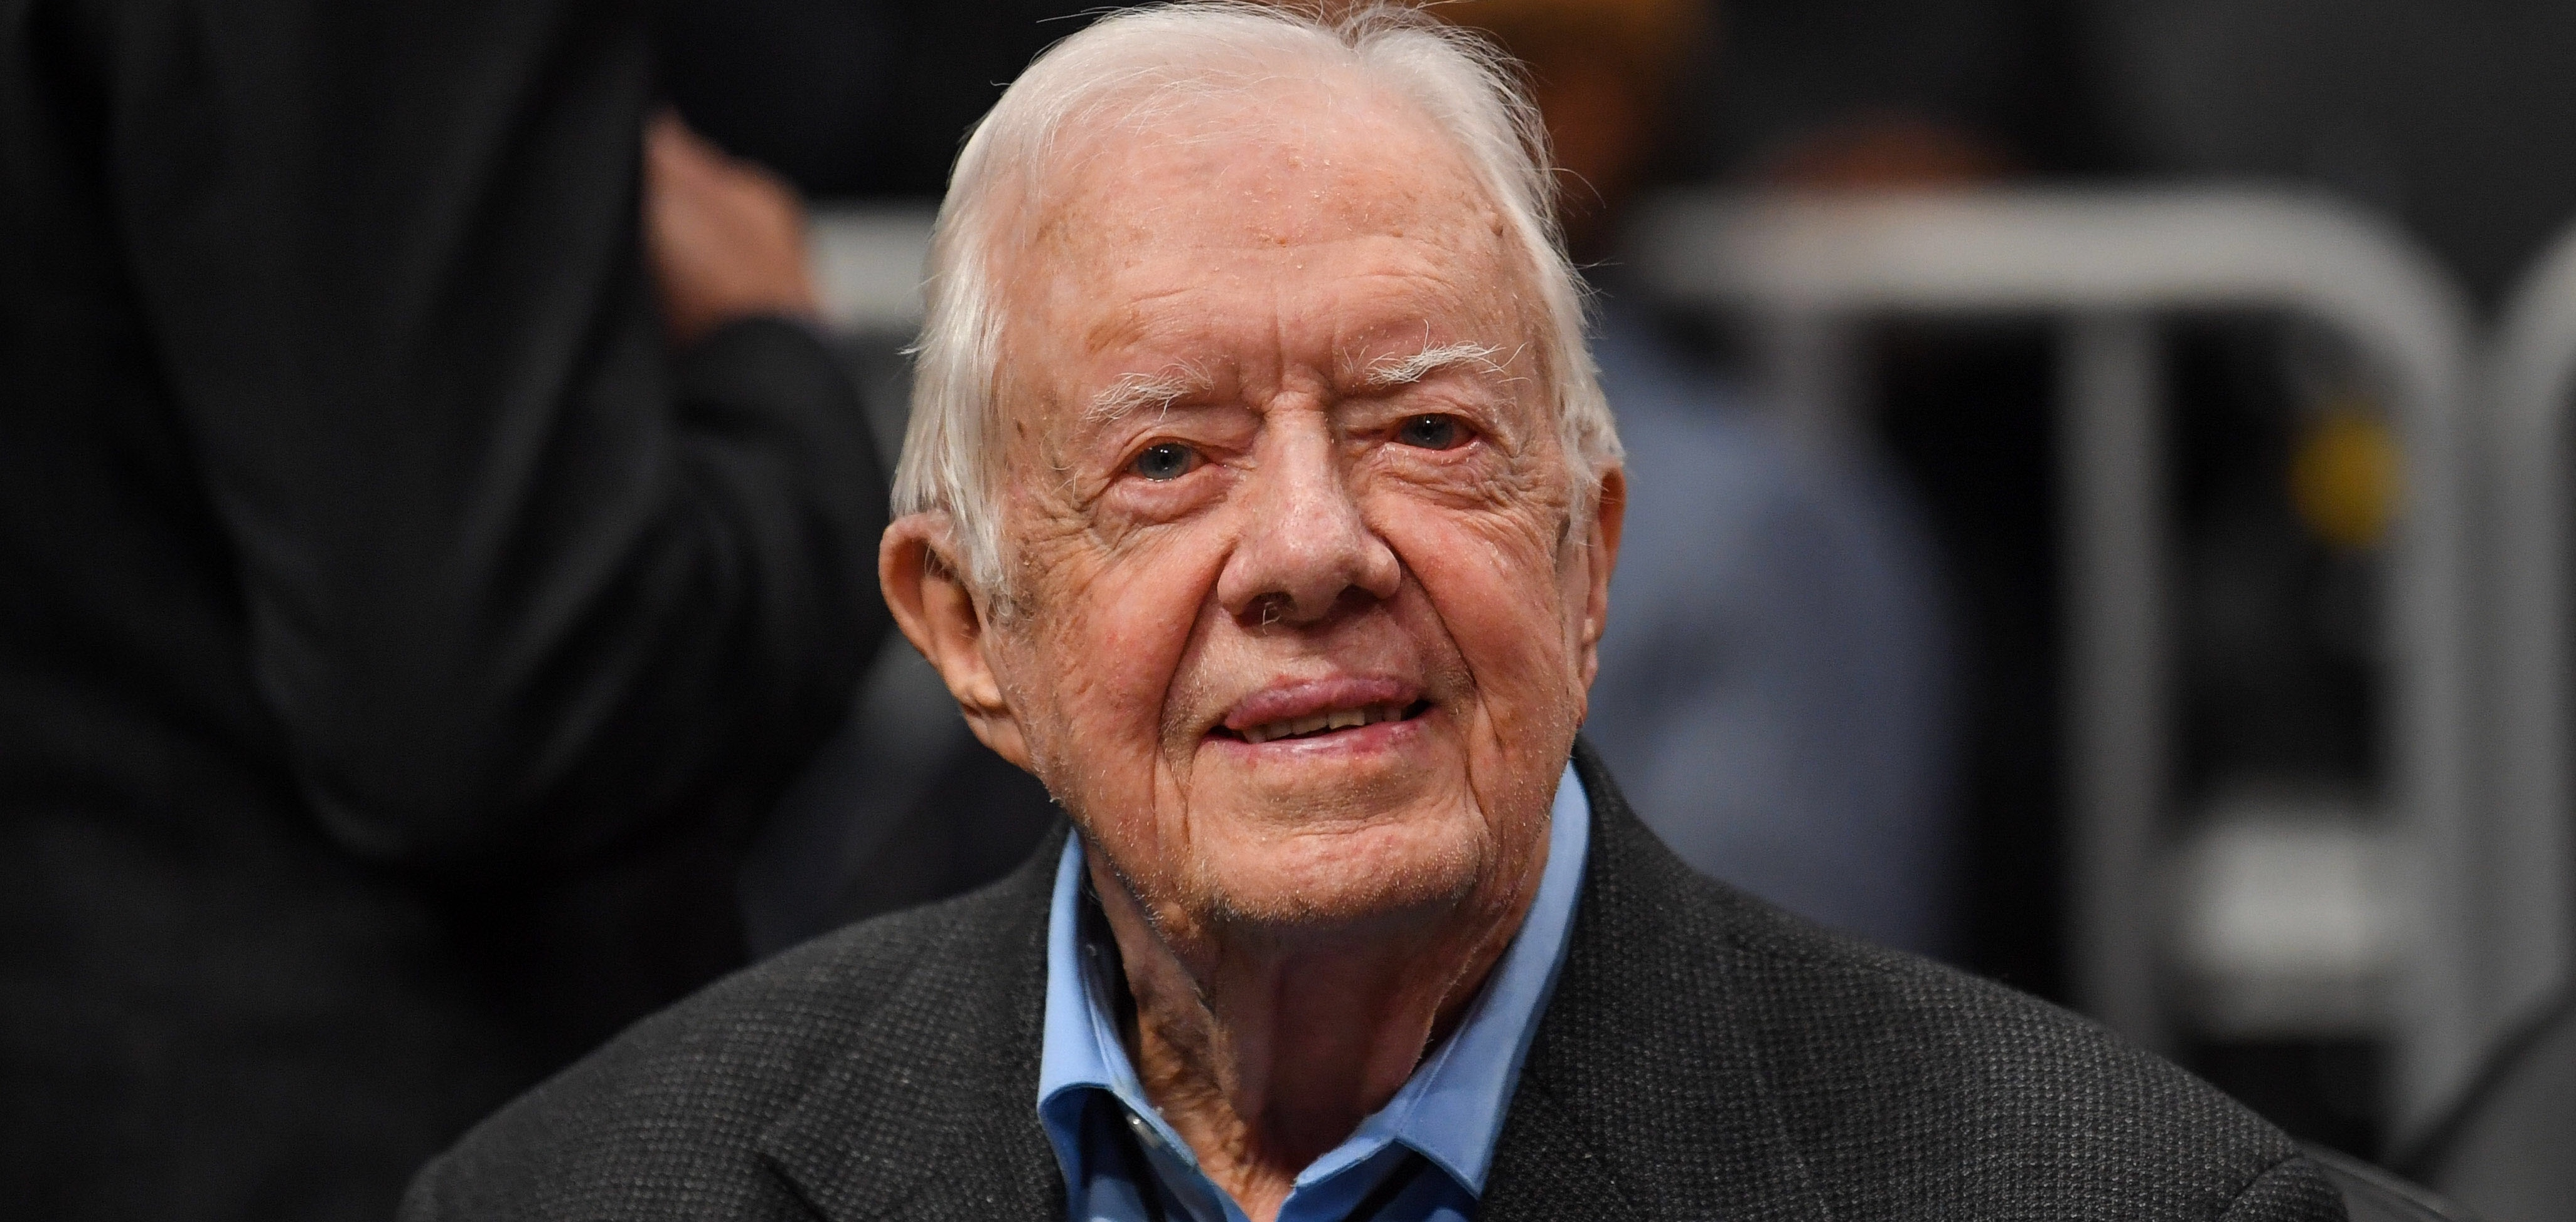 Feb 14, 2019; Atlanta, GA, USA; Former USA president Jimmy Carter shown at the game between the Atlanta Hawks and the New York Knicks at State Farm Arena. Mandatory Credit: Dale Zanine-USA TODAY Sports